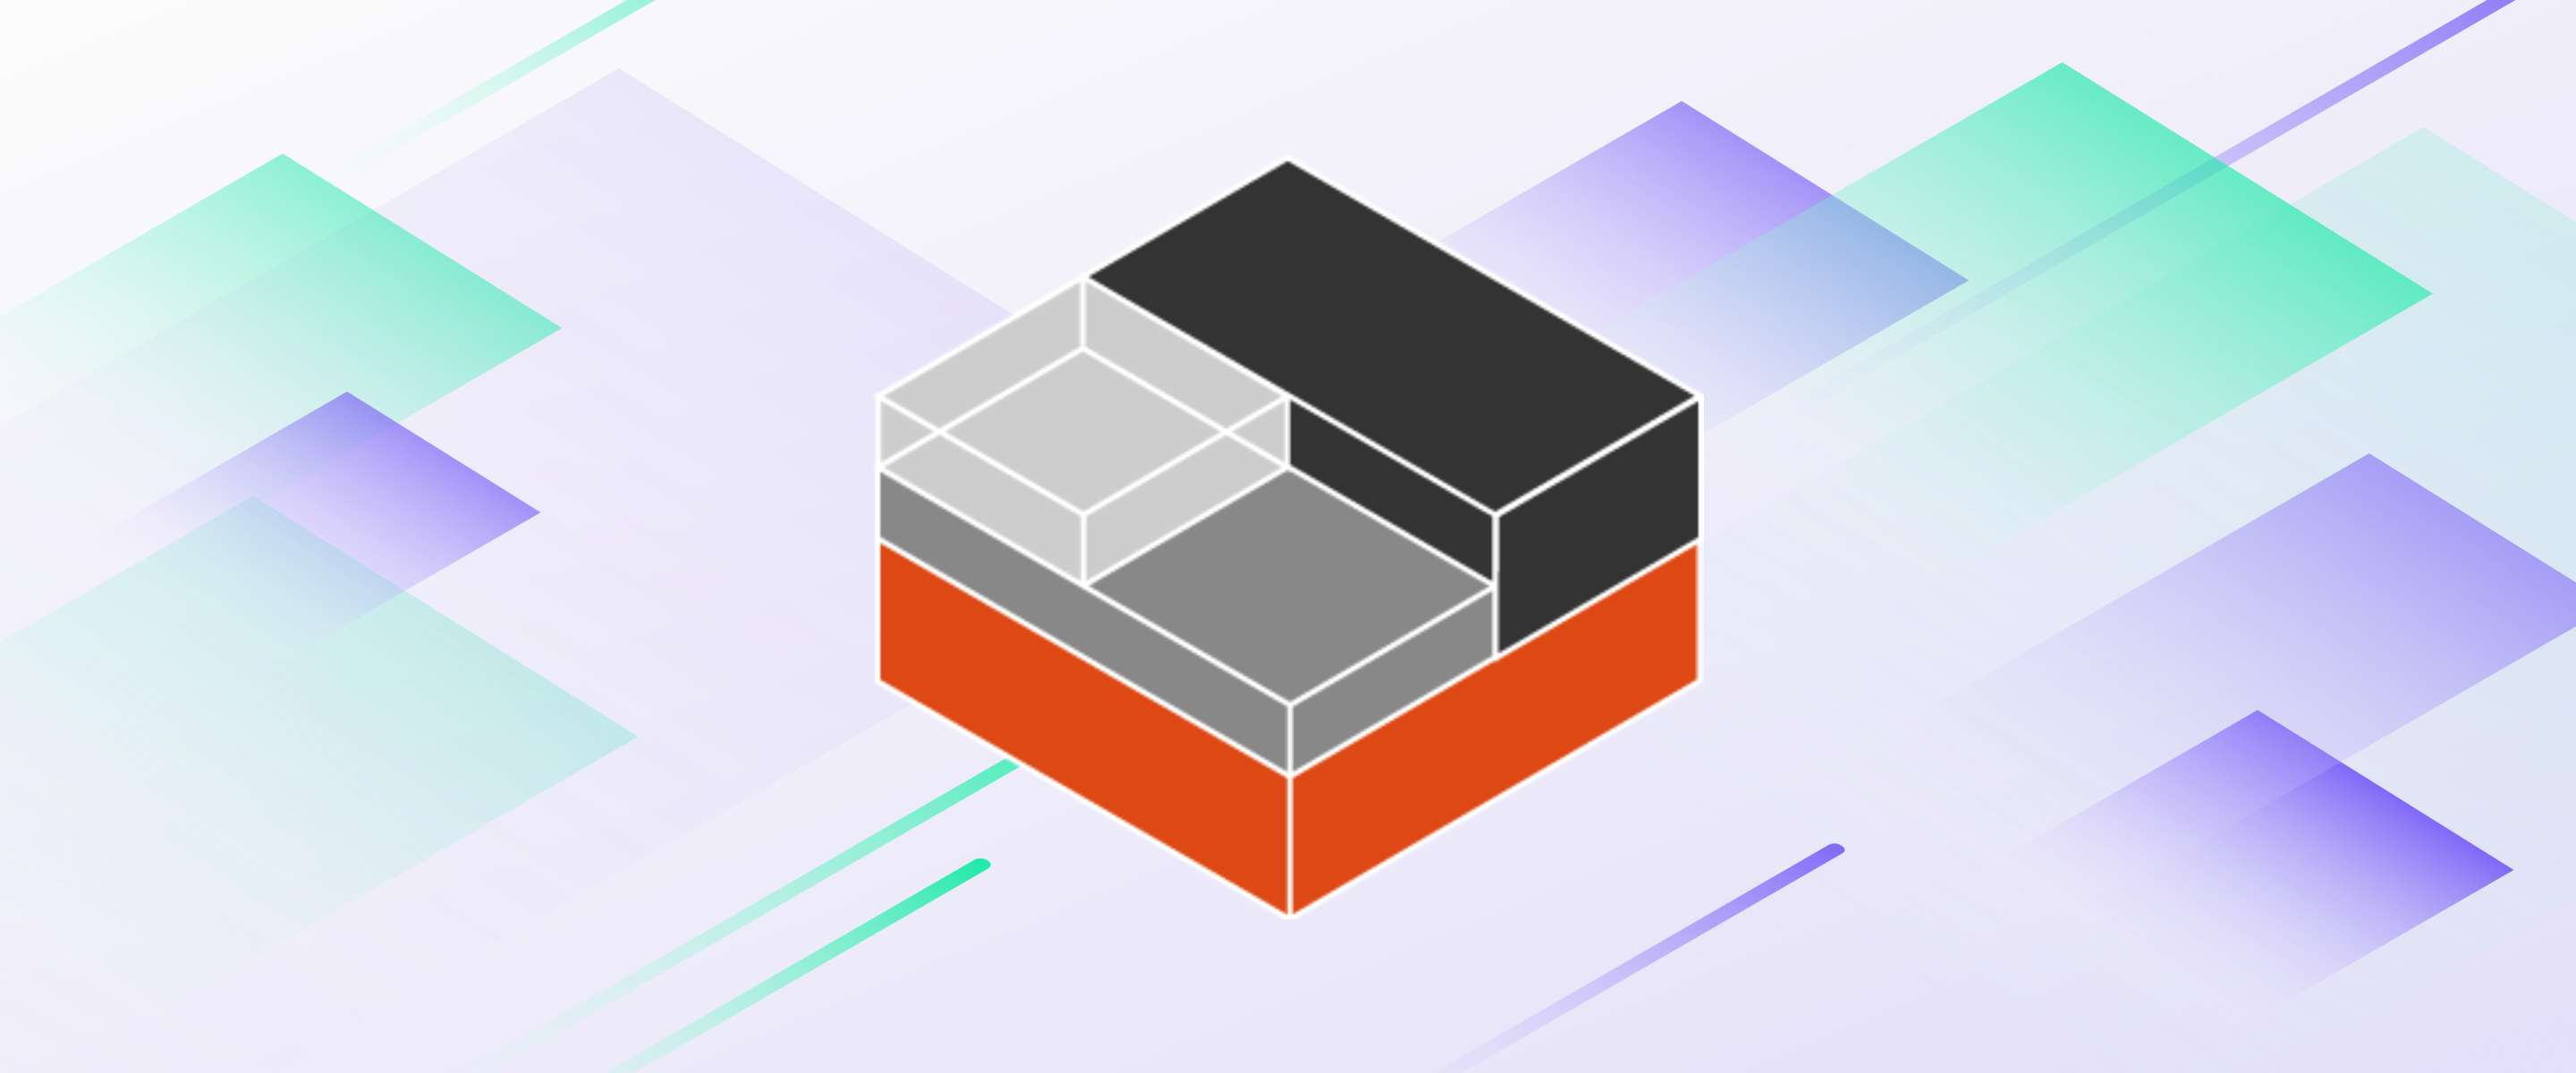 Linux containers (LXC) and HAProxy